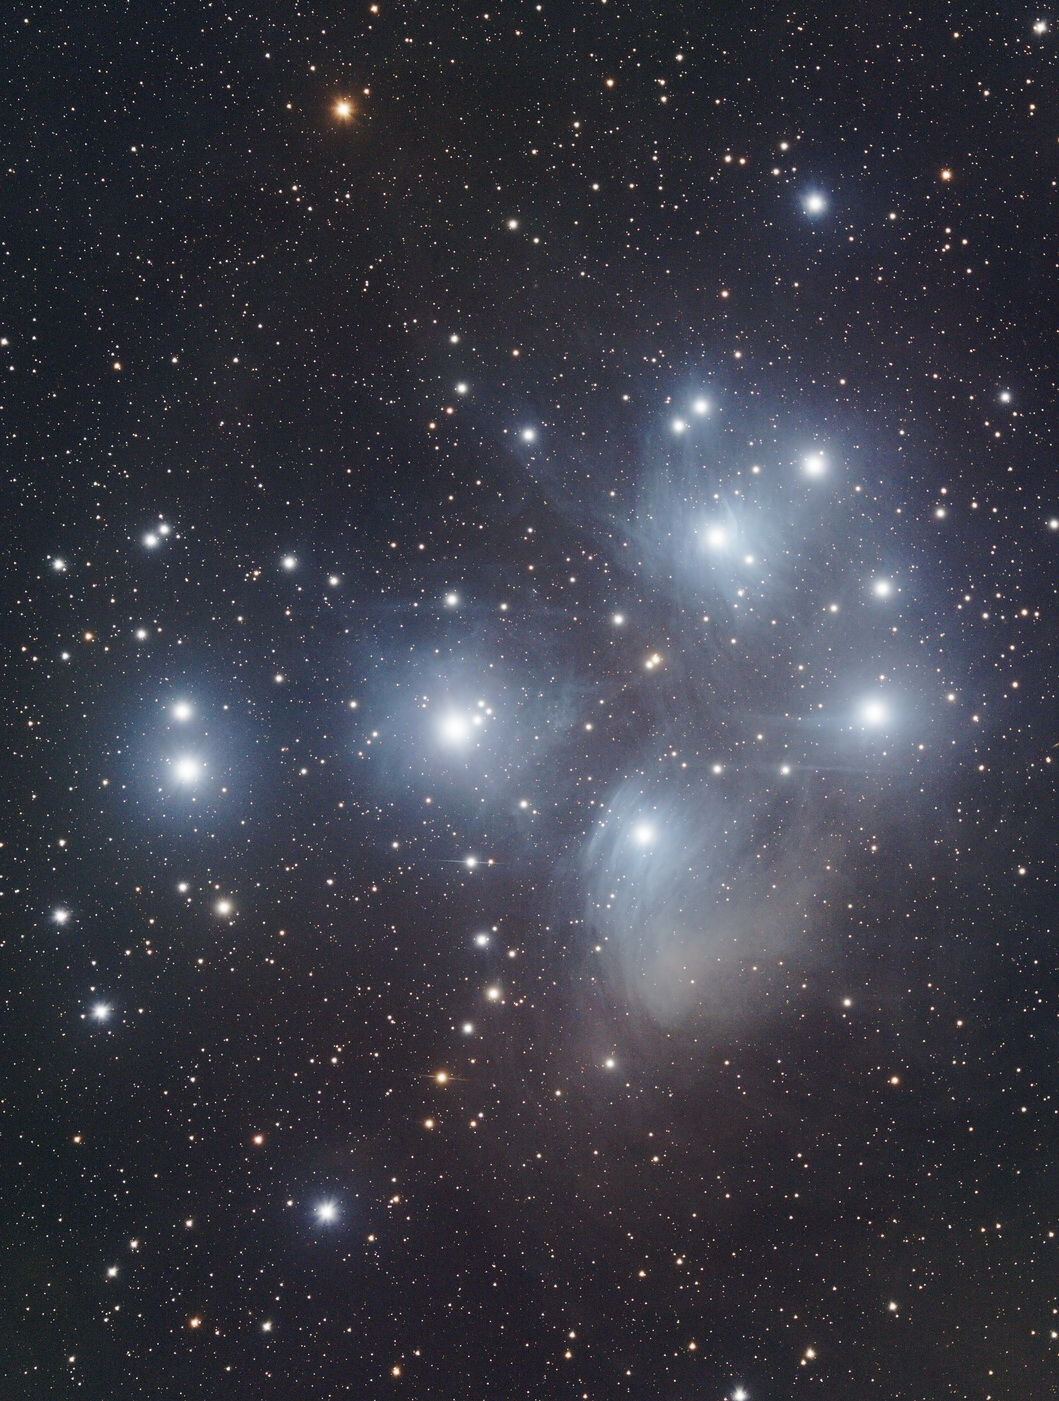 Knox Worde The Pleiades M45